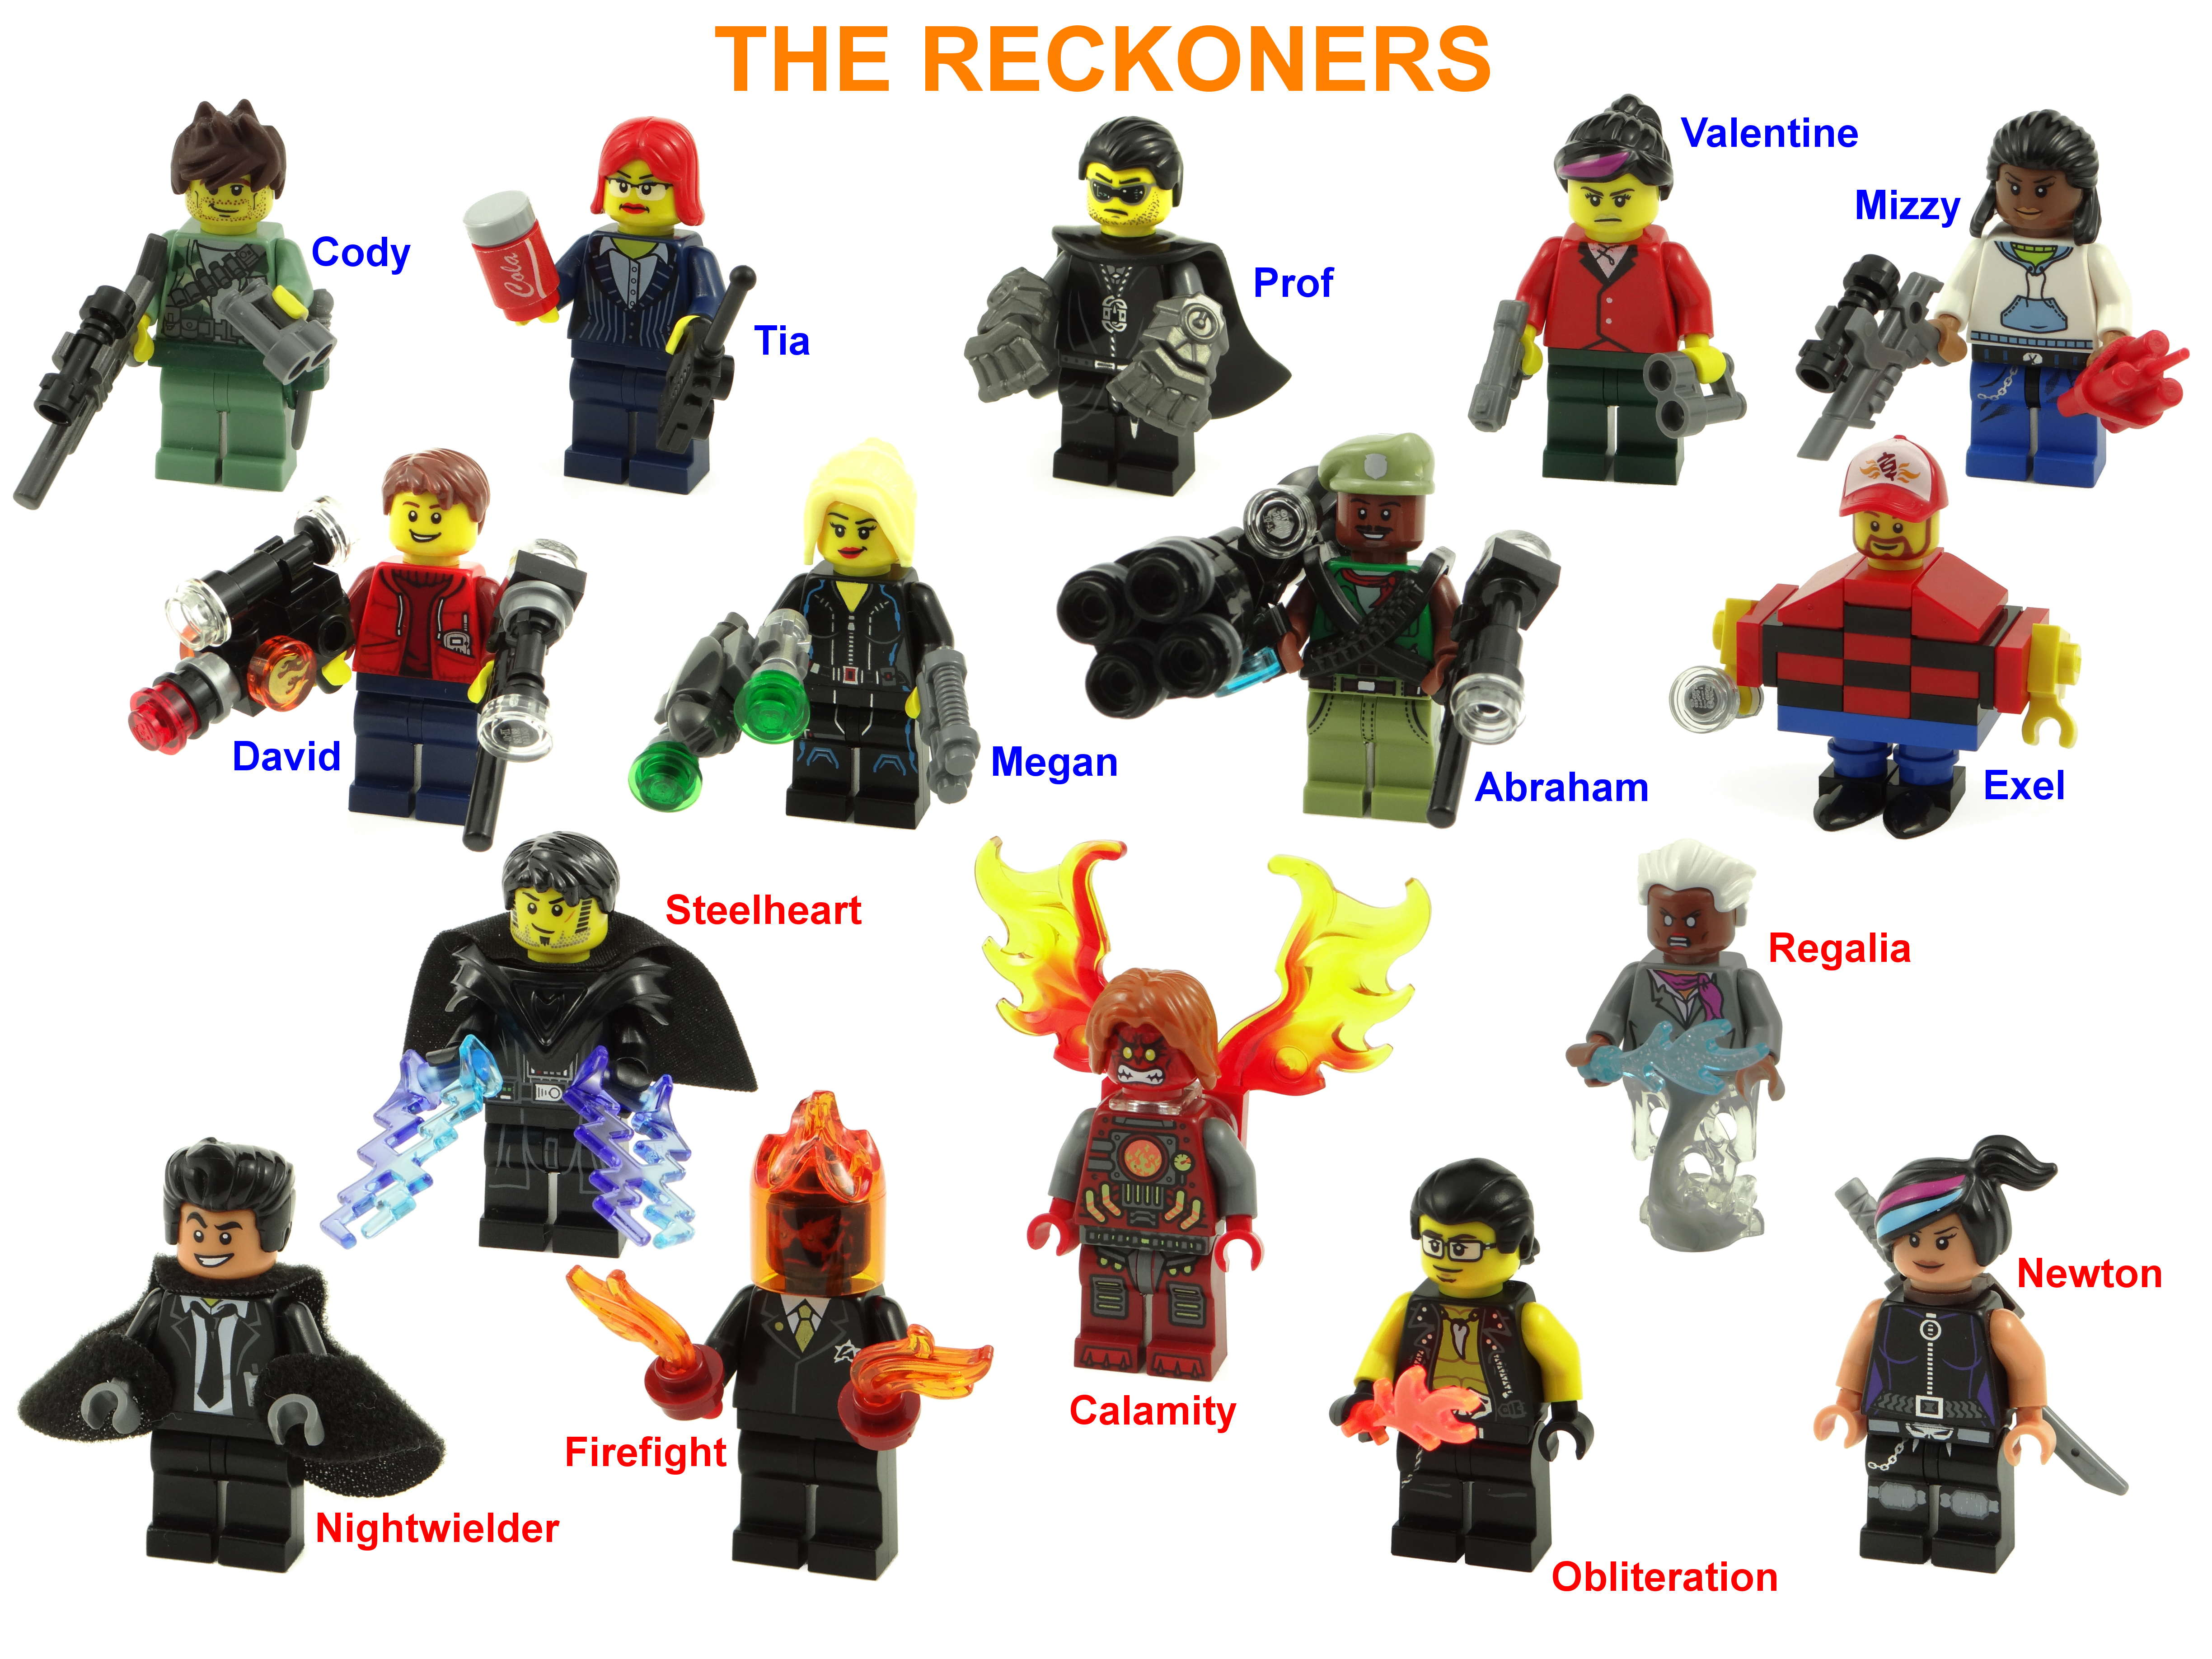 Reckoners characters fan art